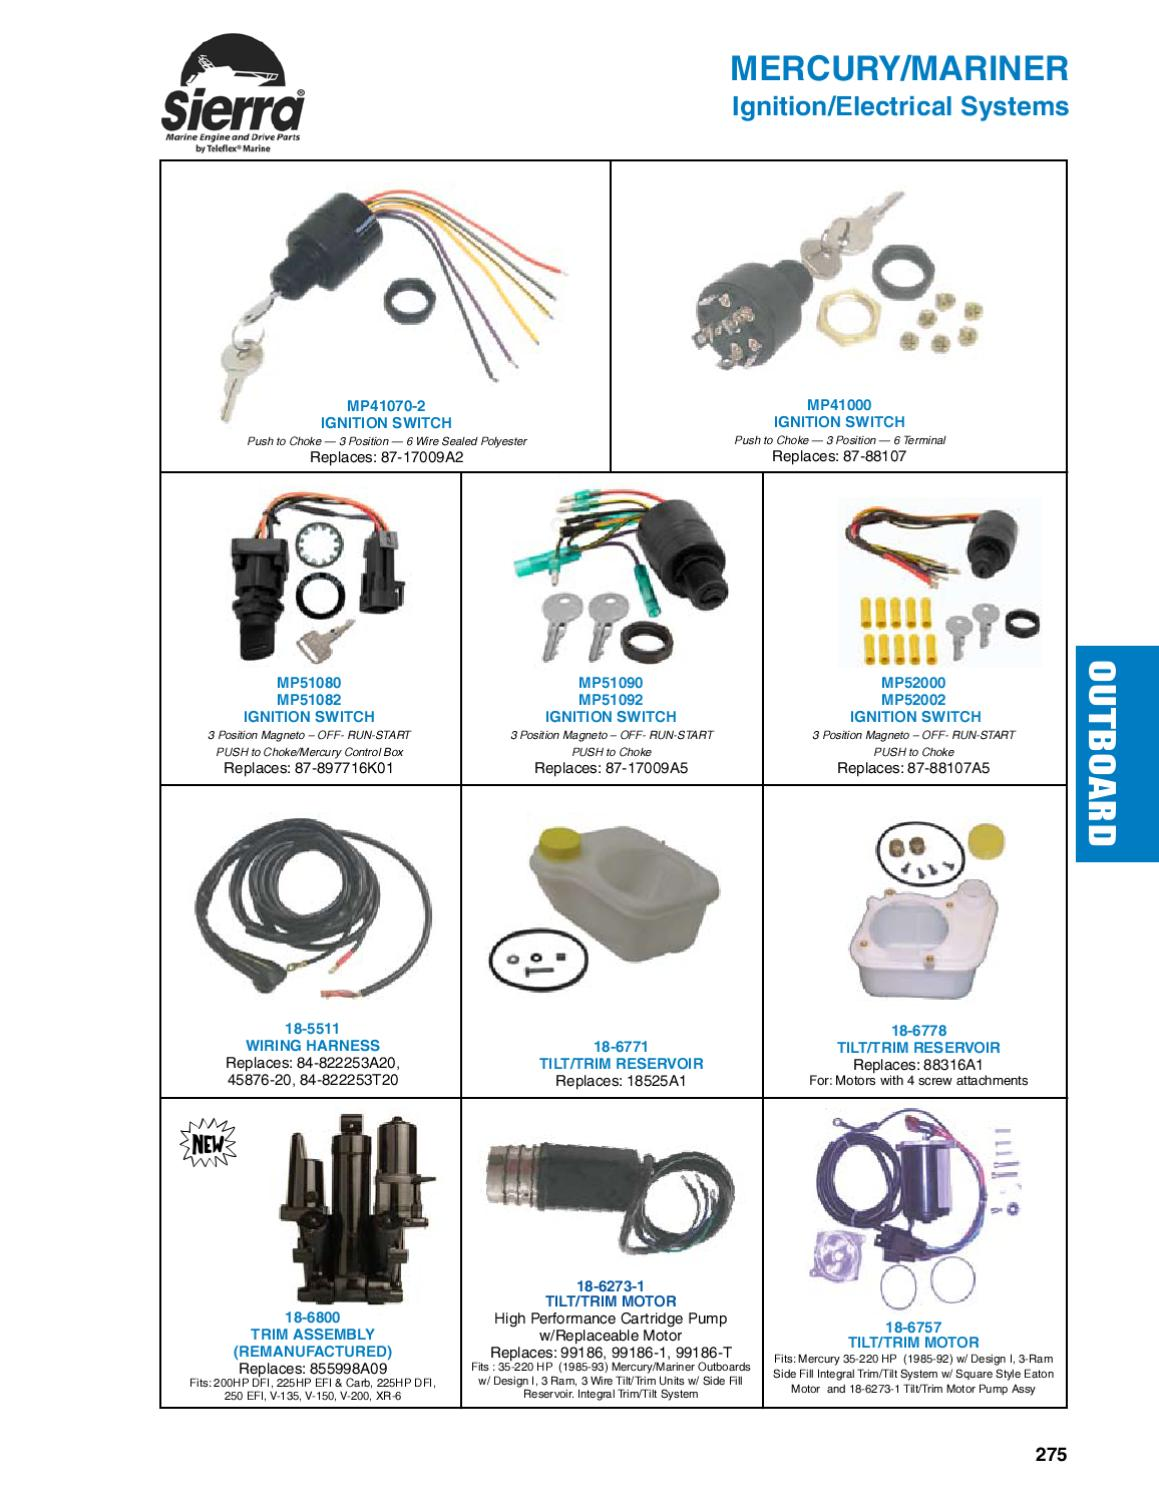 Sierra Marine Engine and Drive Products for Mercury/Mariner